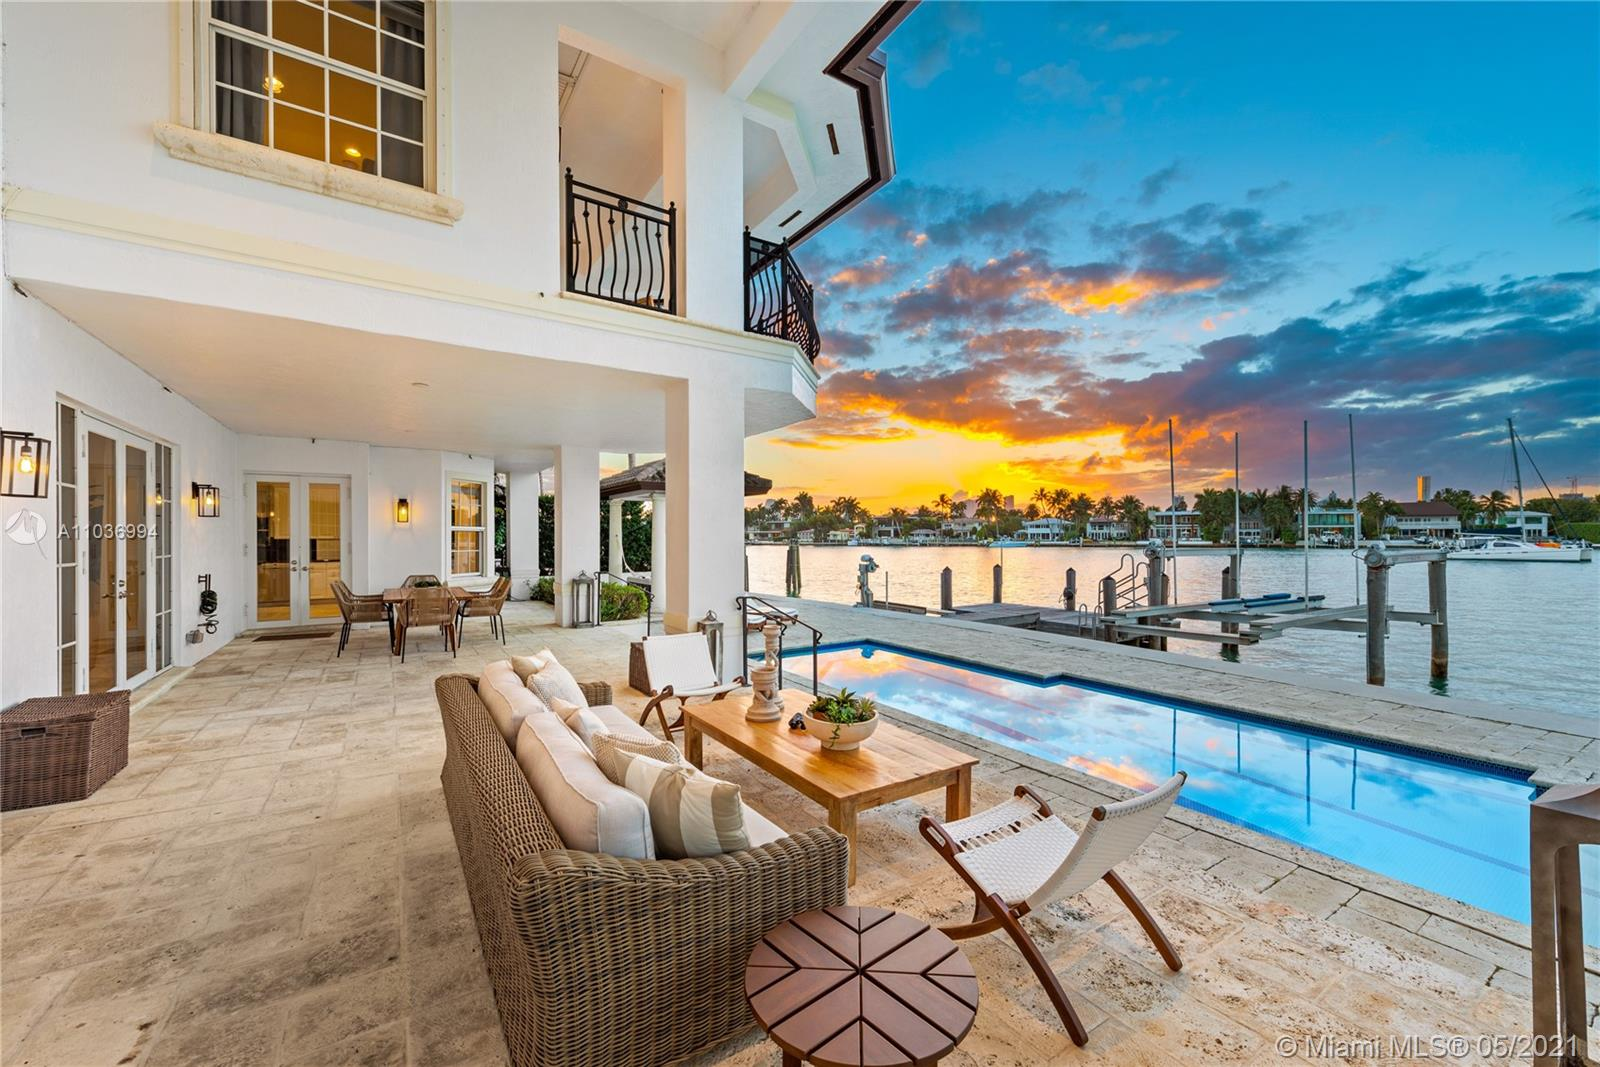 Venetian Islands ## - 424 W Rivo Alto Dr ##, Miami Beach, FL 33139